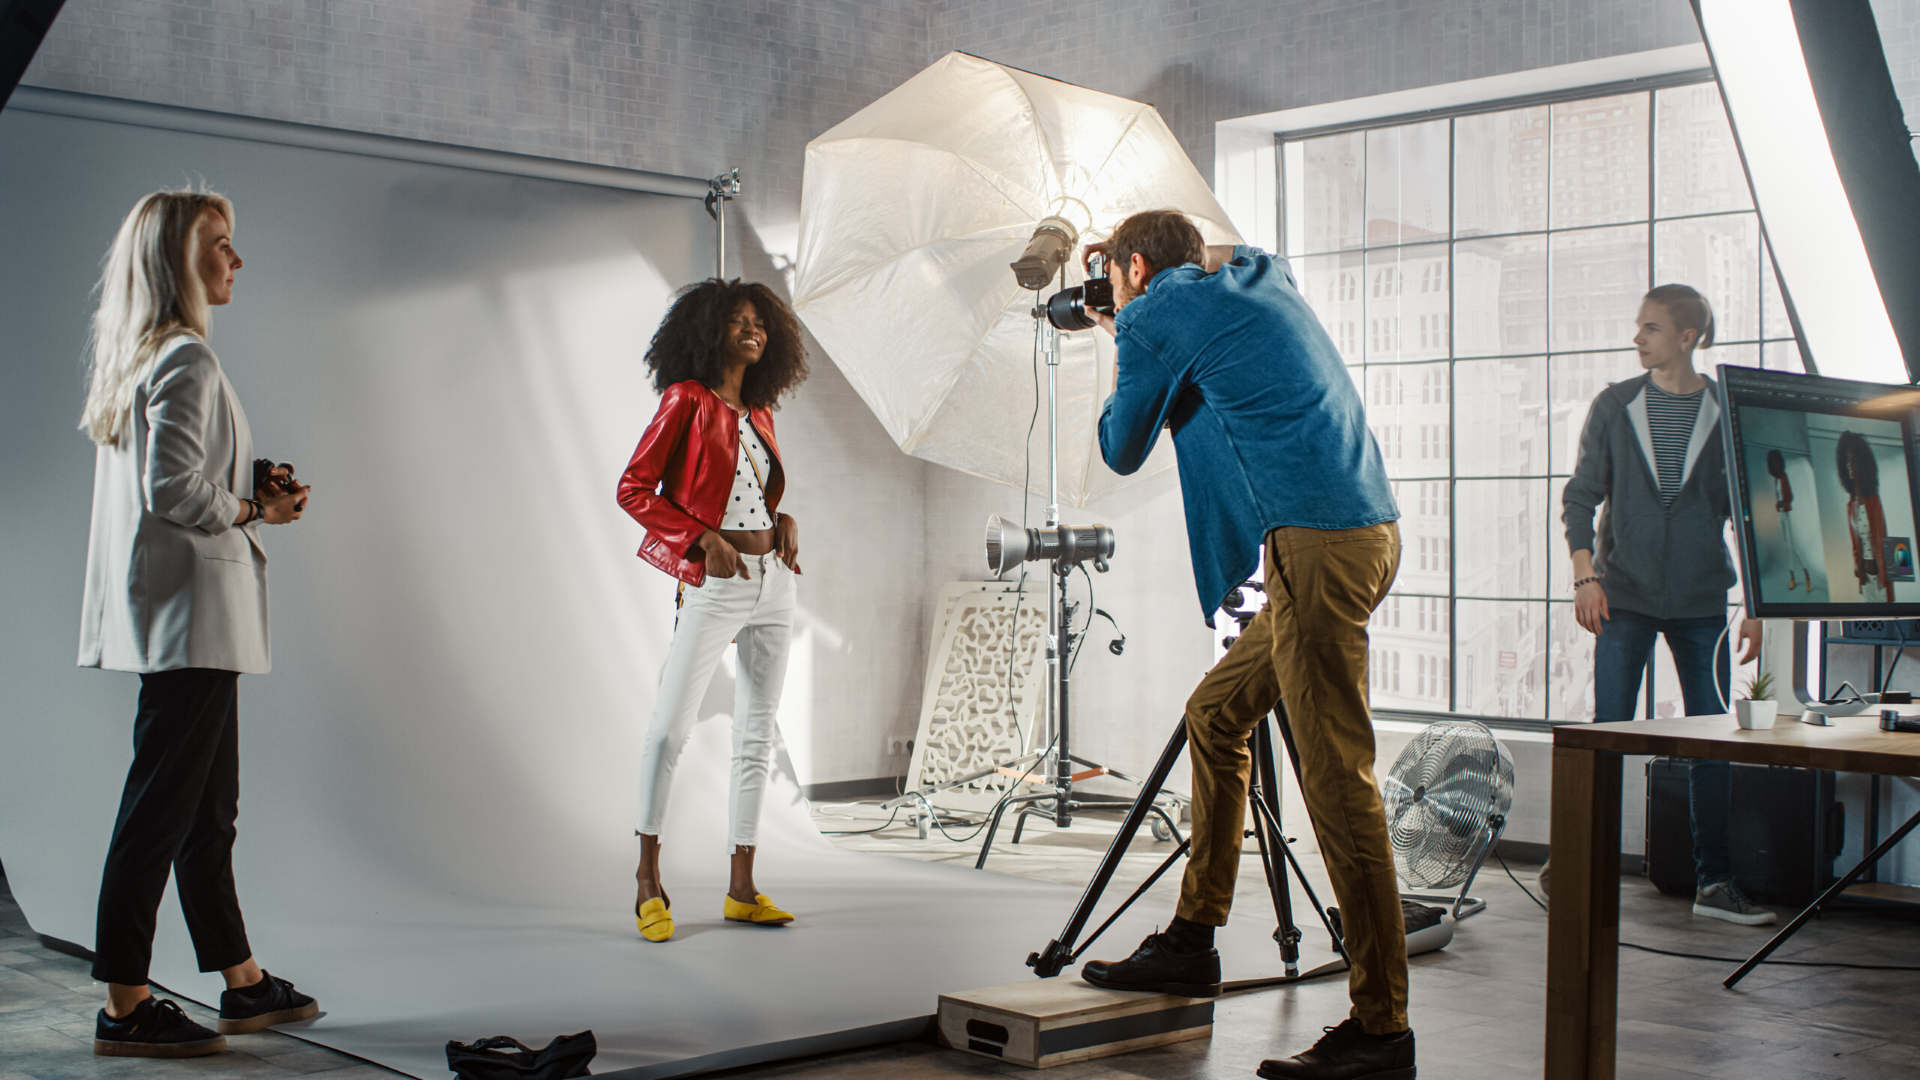 Reduce Photoshoot Costs with Automated On-Model Fashion Imagery